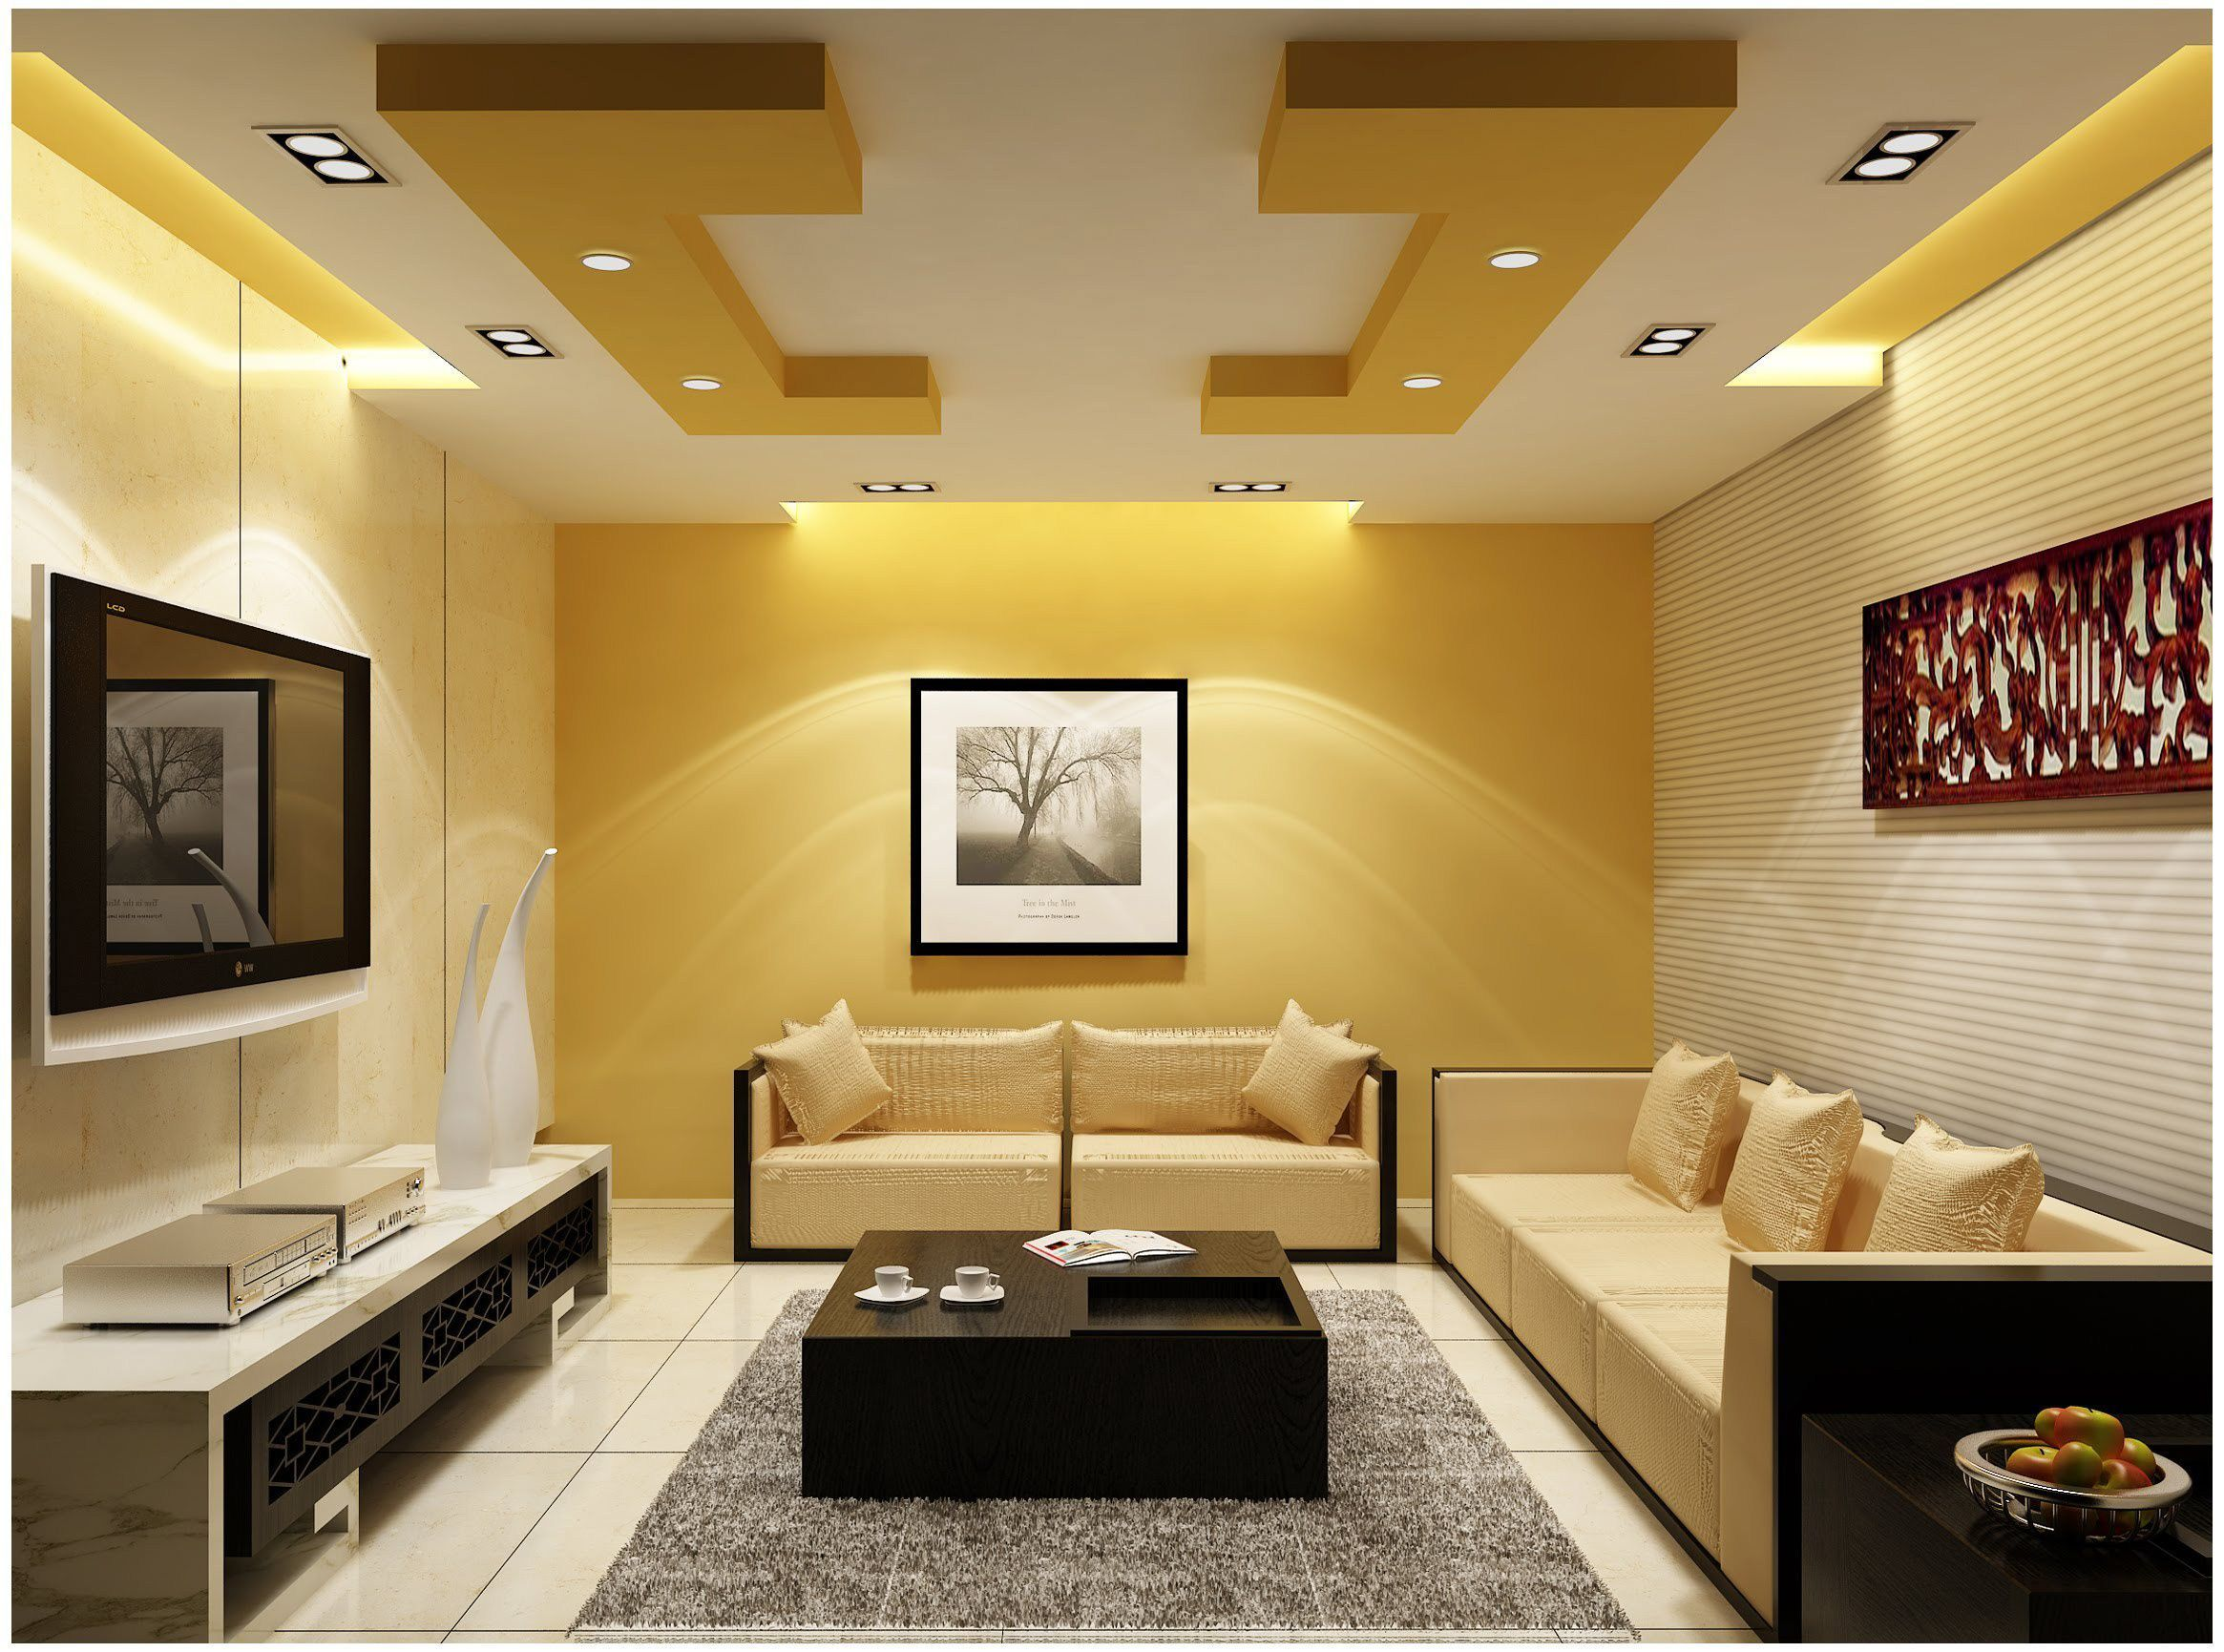 Home interior designers in chennai check out my behance project ucinterior design chennaiud